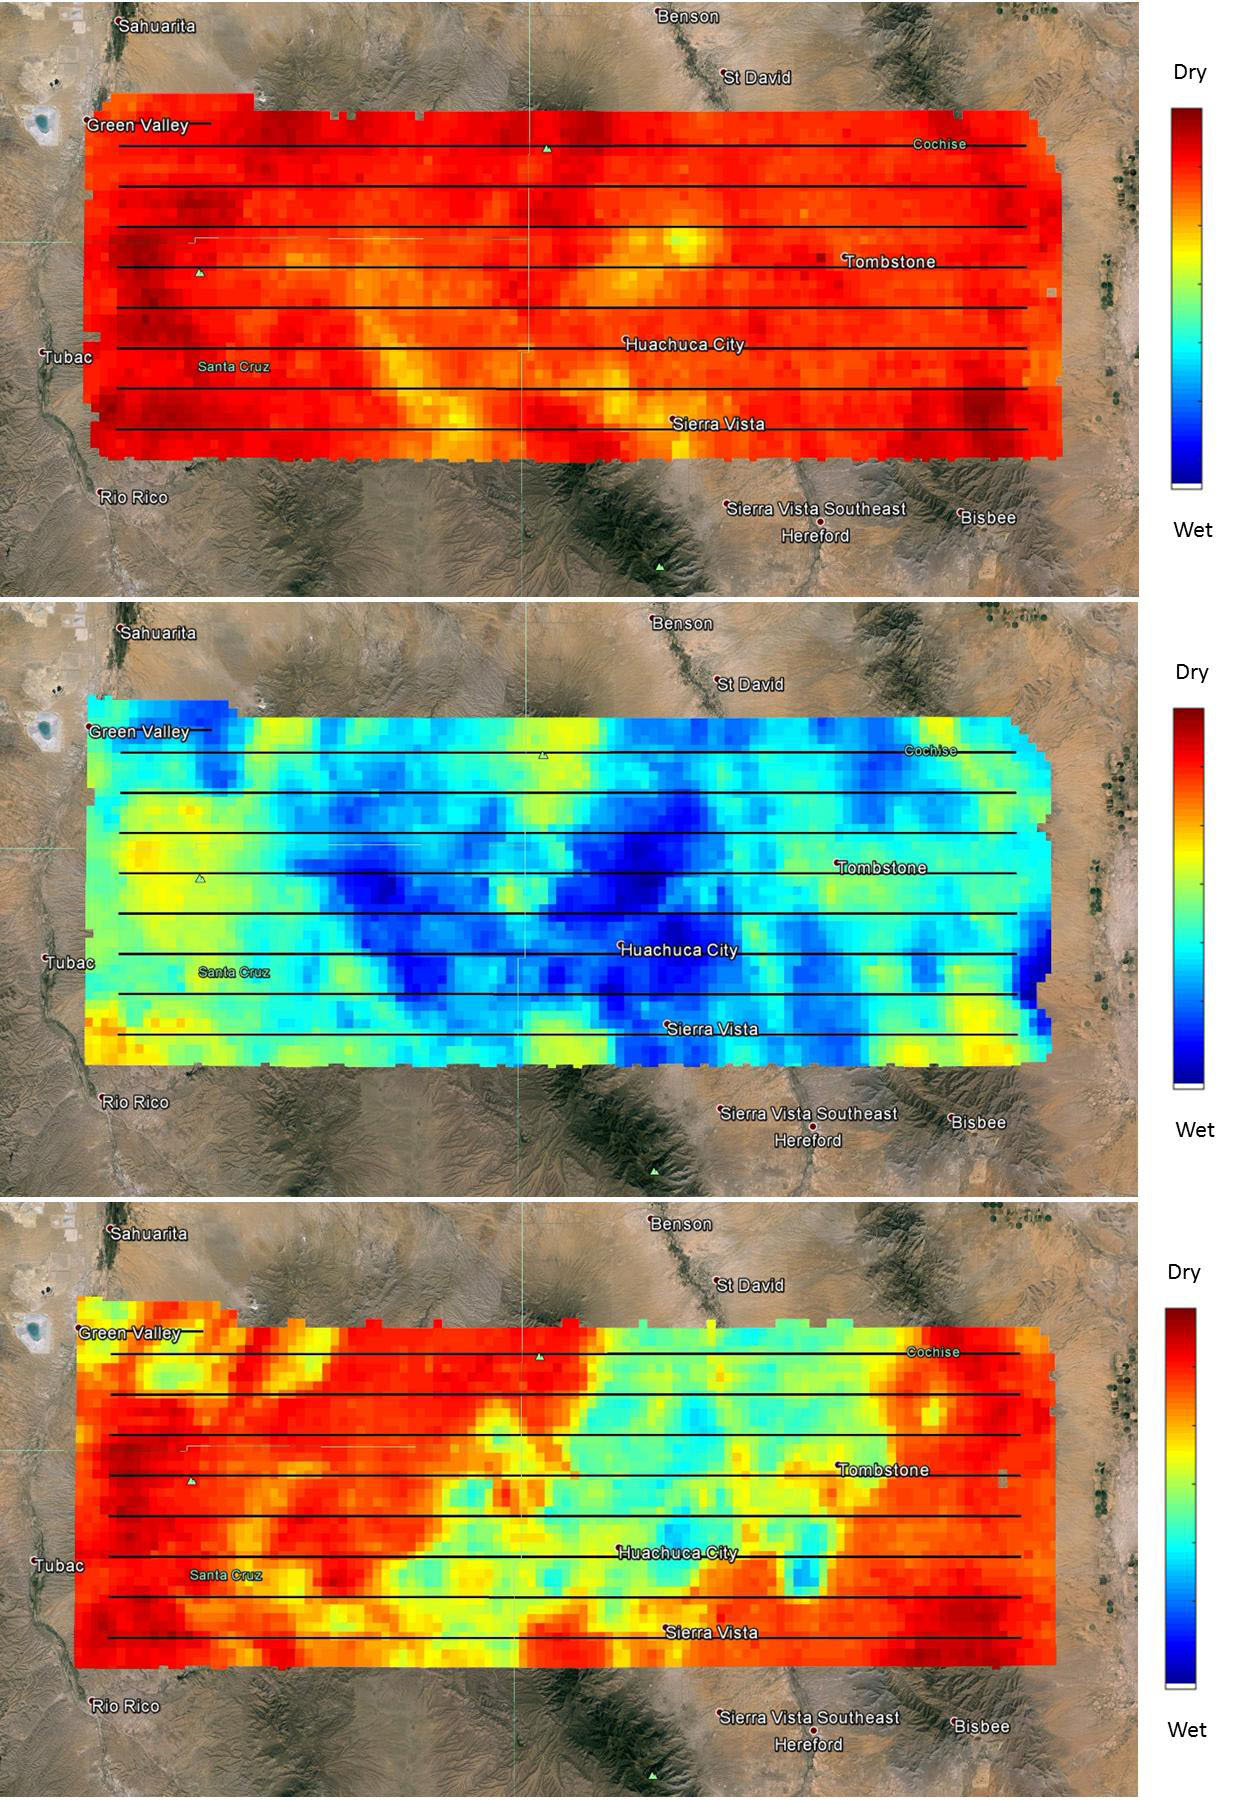 NASA's SMAP (Soil Moisture Active Passive) satellite observatory conducted a field experiment as part of its soil moisture data product validation program in southern Arizona on Aug. 2-18, 2015. Credit: NASA/JPL-Caltech